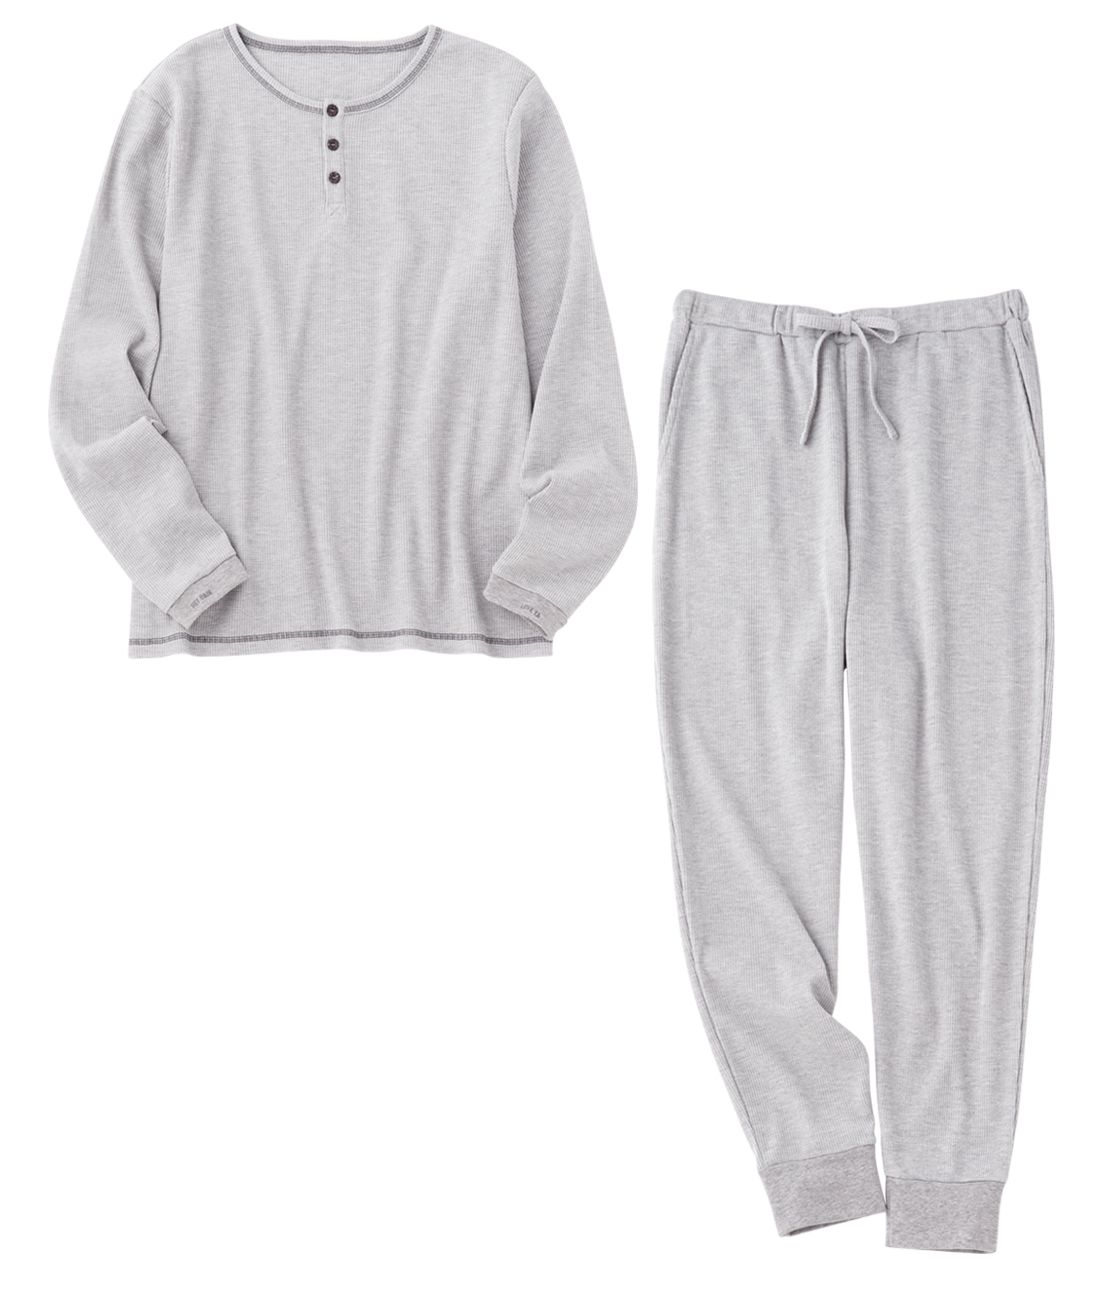 Men's thermal pajamas